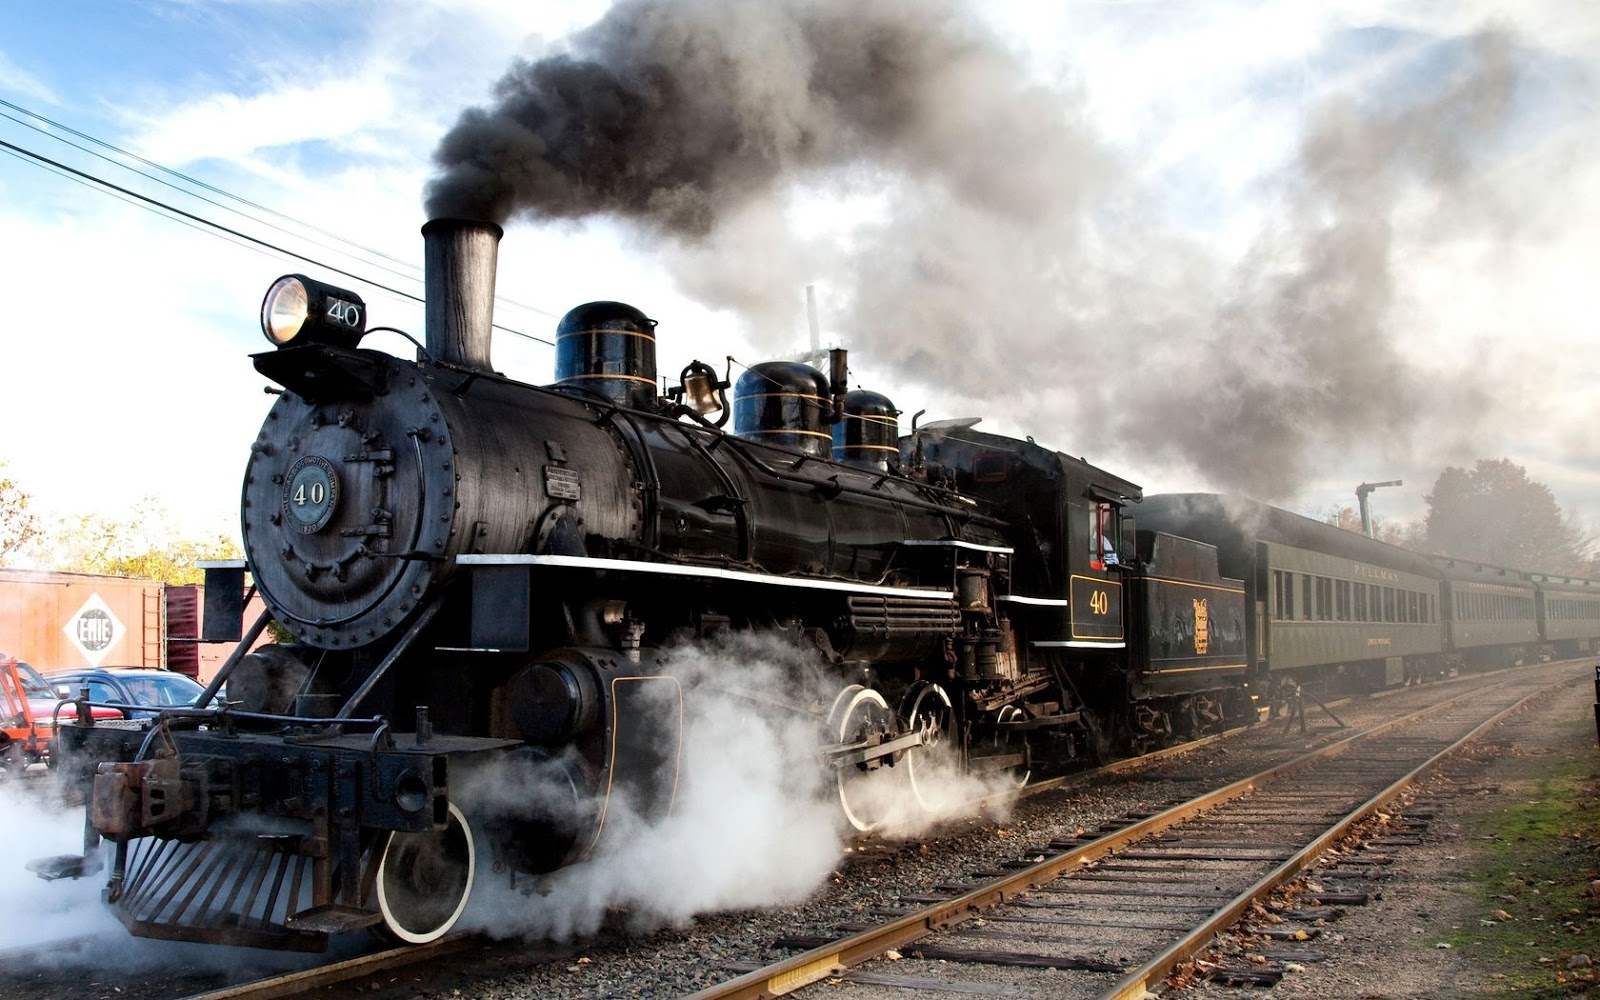 journey from steam locomotive to bullet train